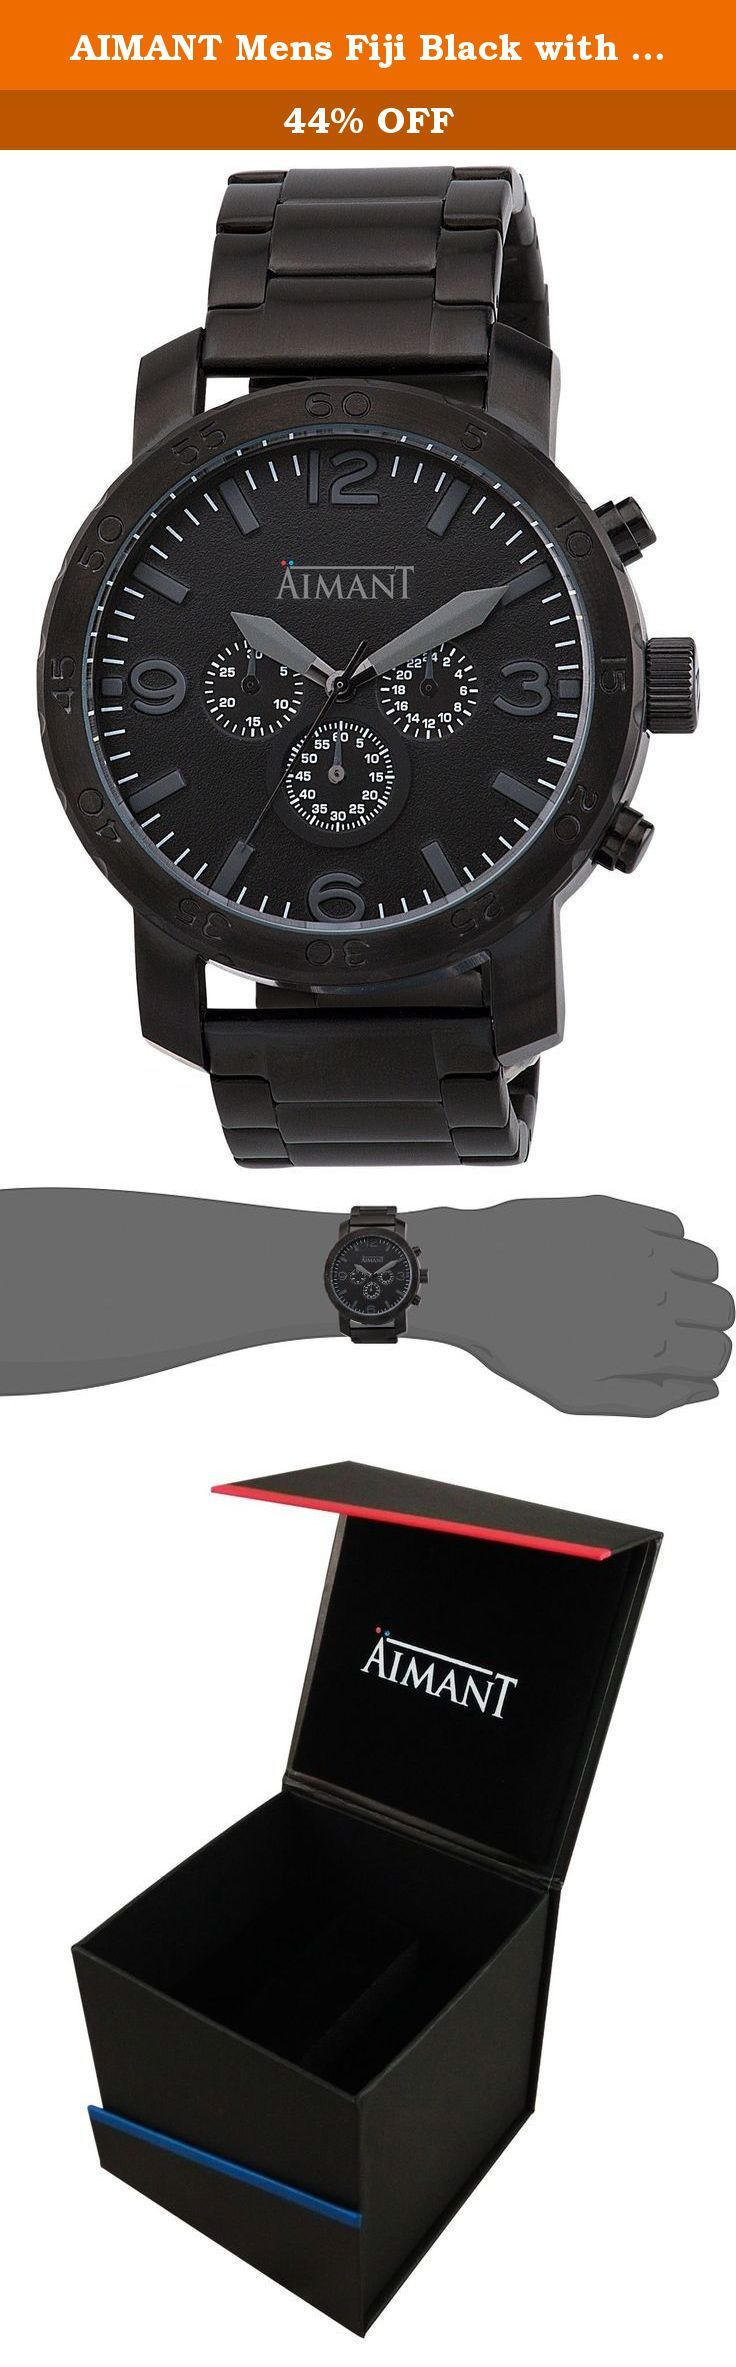 AIMANT Mens Fiji Black with Black Stainless Steel Bracelet Watch GFI-130S1-11. The Fiji familyÍs design takes its casual spirit from a city surrounded by the sea where traditional and modern architecture is evident. In this line the leather and metal bands from the classic world, complemented with secondary dials and oversized crowns may be appreciated. A state of the art look which will transform a simple blue jean combined with a t-shirt into a clothing item.